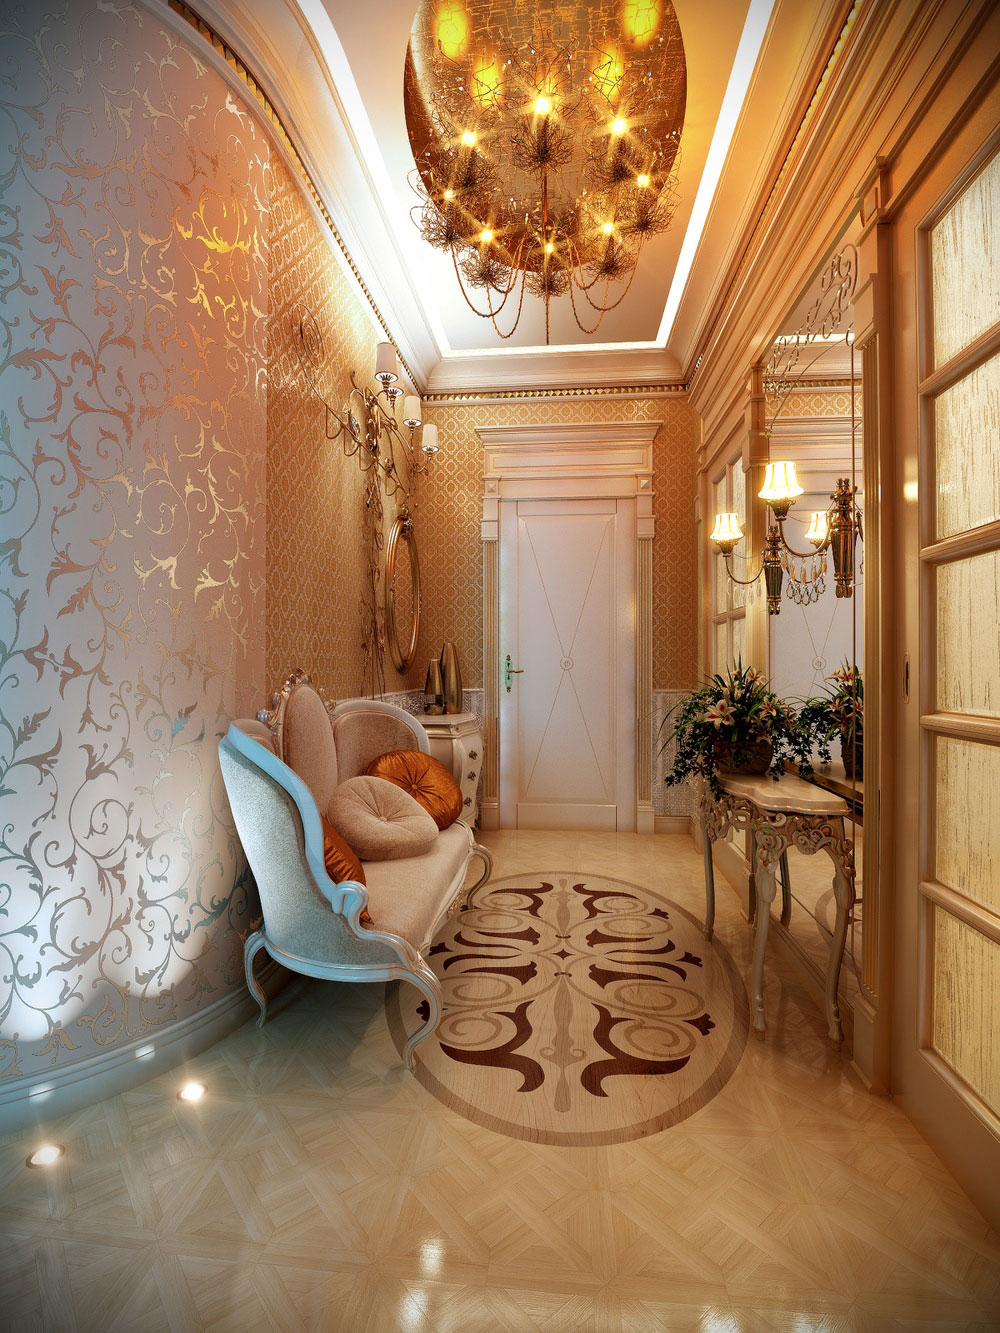 Warm Your Day With These Hallway Decorating Ideas-4 Warm your day with these hallway decorating ideas